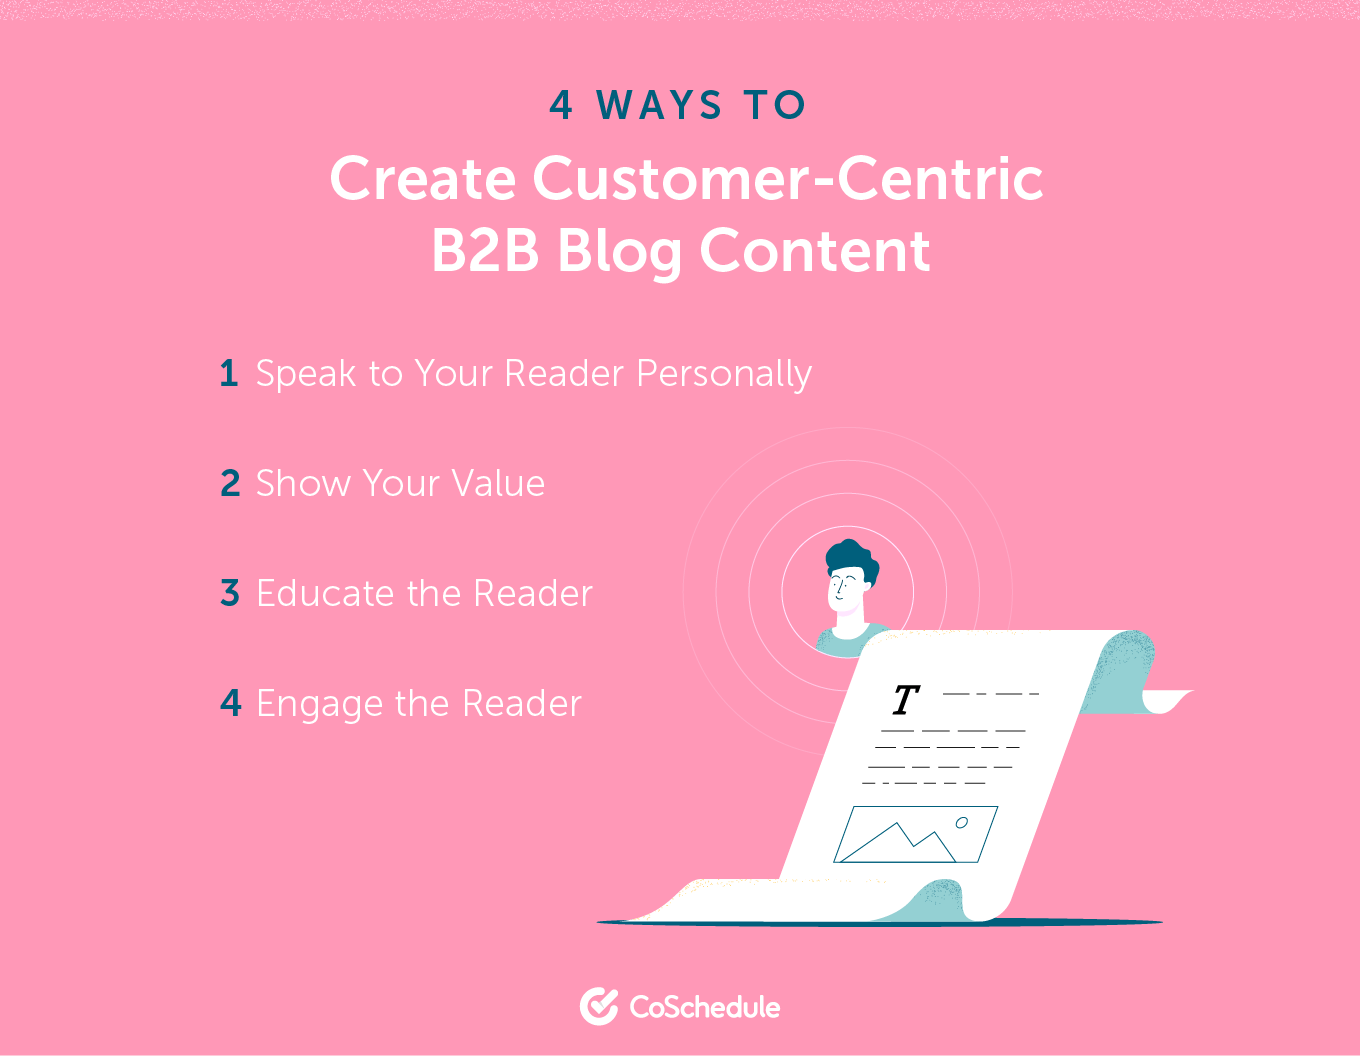 4 Ways to Create Customer-Centric B2B Content